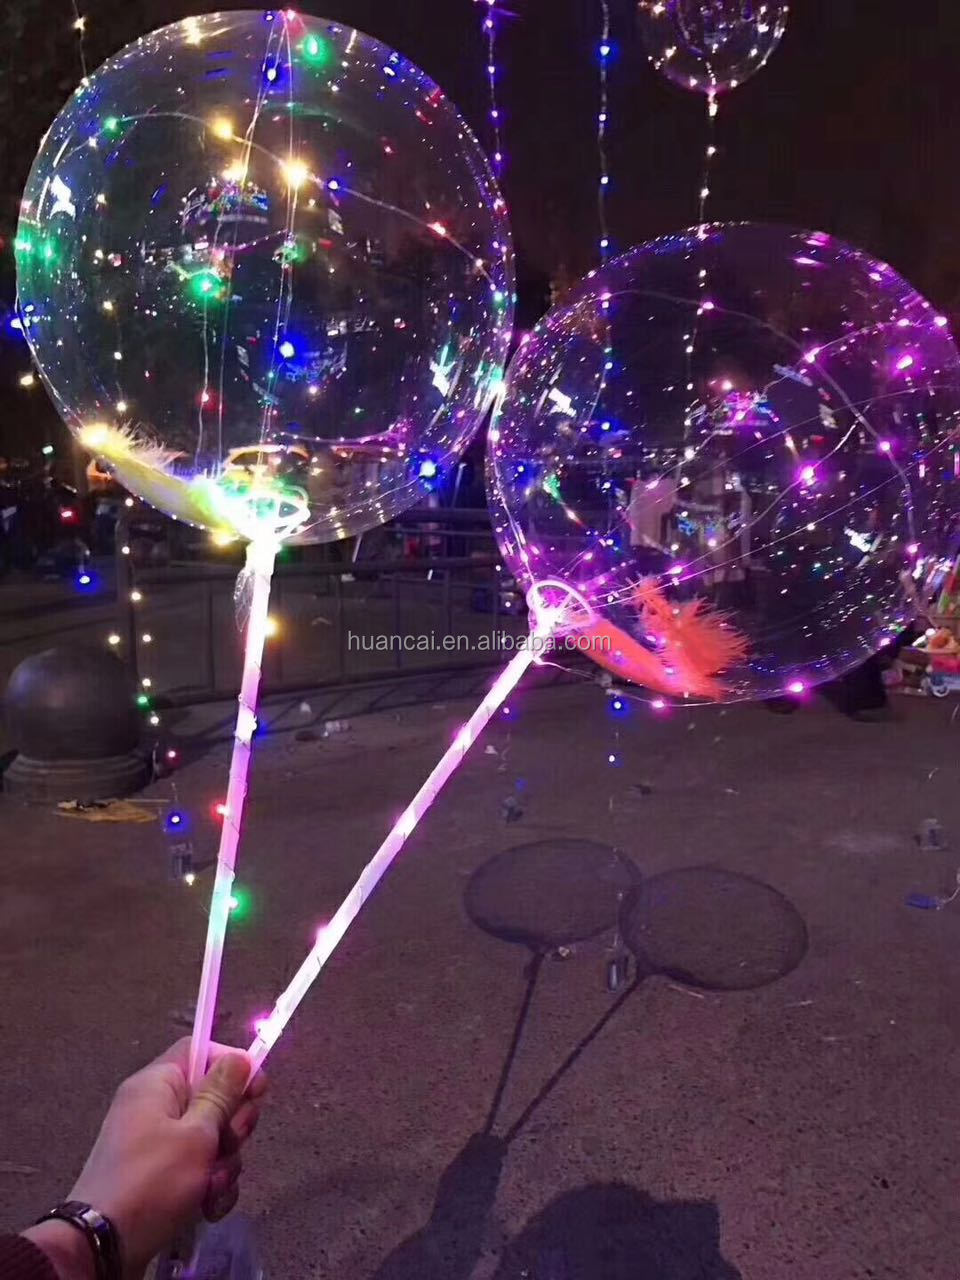 Wholesale Bobo ballon 18 inches LED balloon with String Light and Stick&Cup for Christmas New Year Wedding Party Decoration